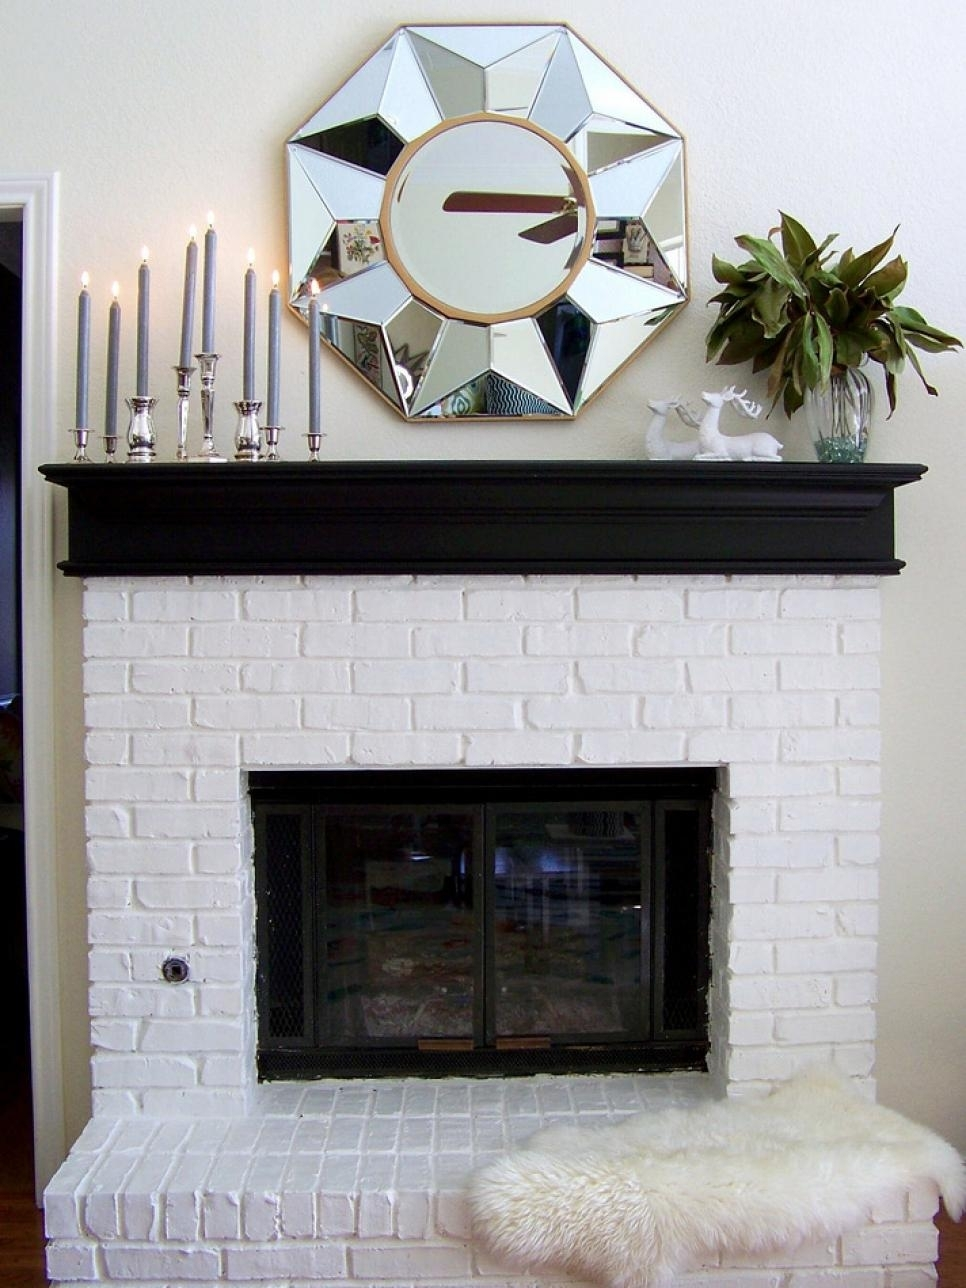 10 Spectacular Decorating Ideas For Fireplace Mantel %name 2020